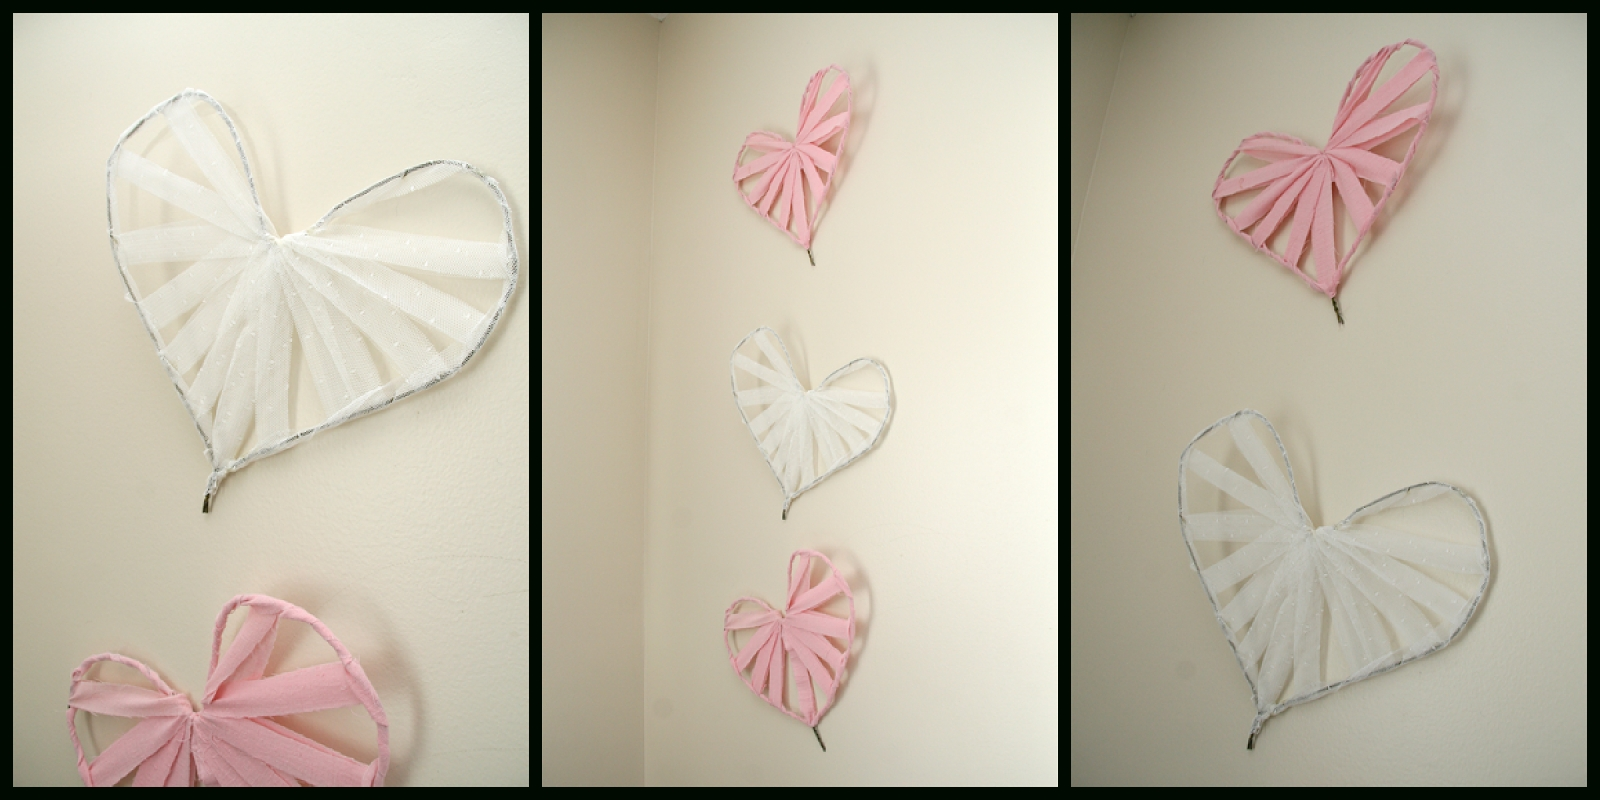 Fresh Creative Wall Art For Nursery #10378 With Regard To Best And Newest Homemade Wall Art (View 8 of 20)